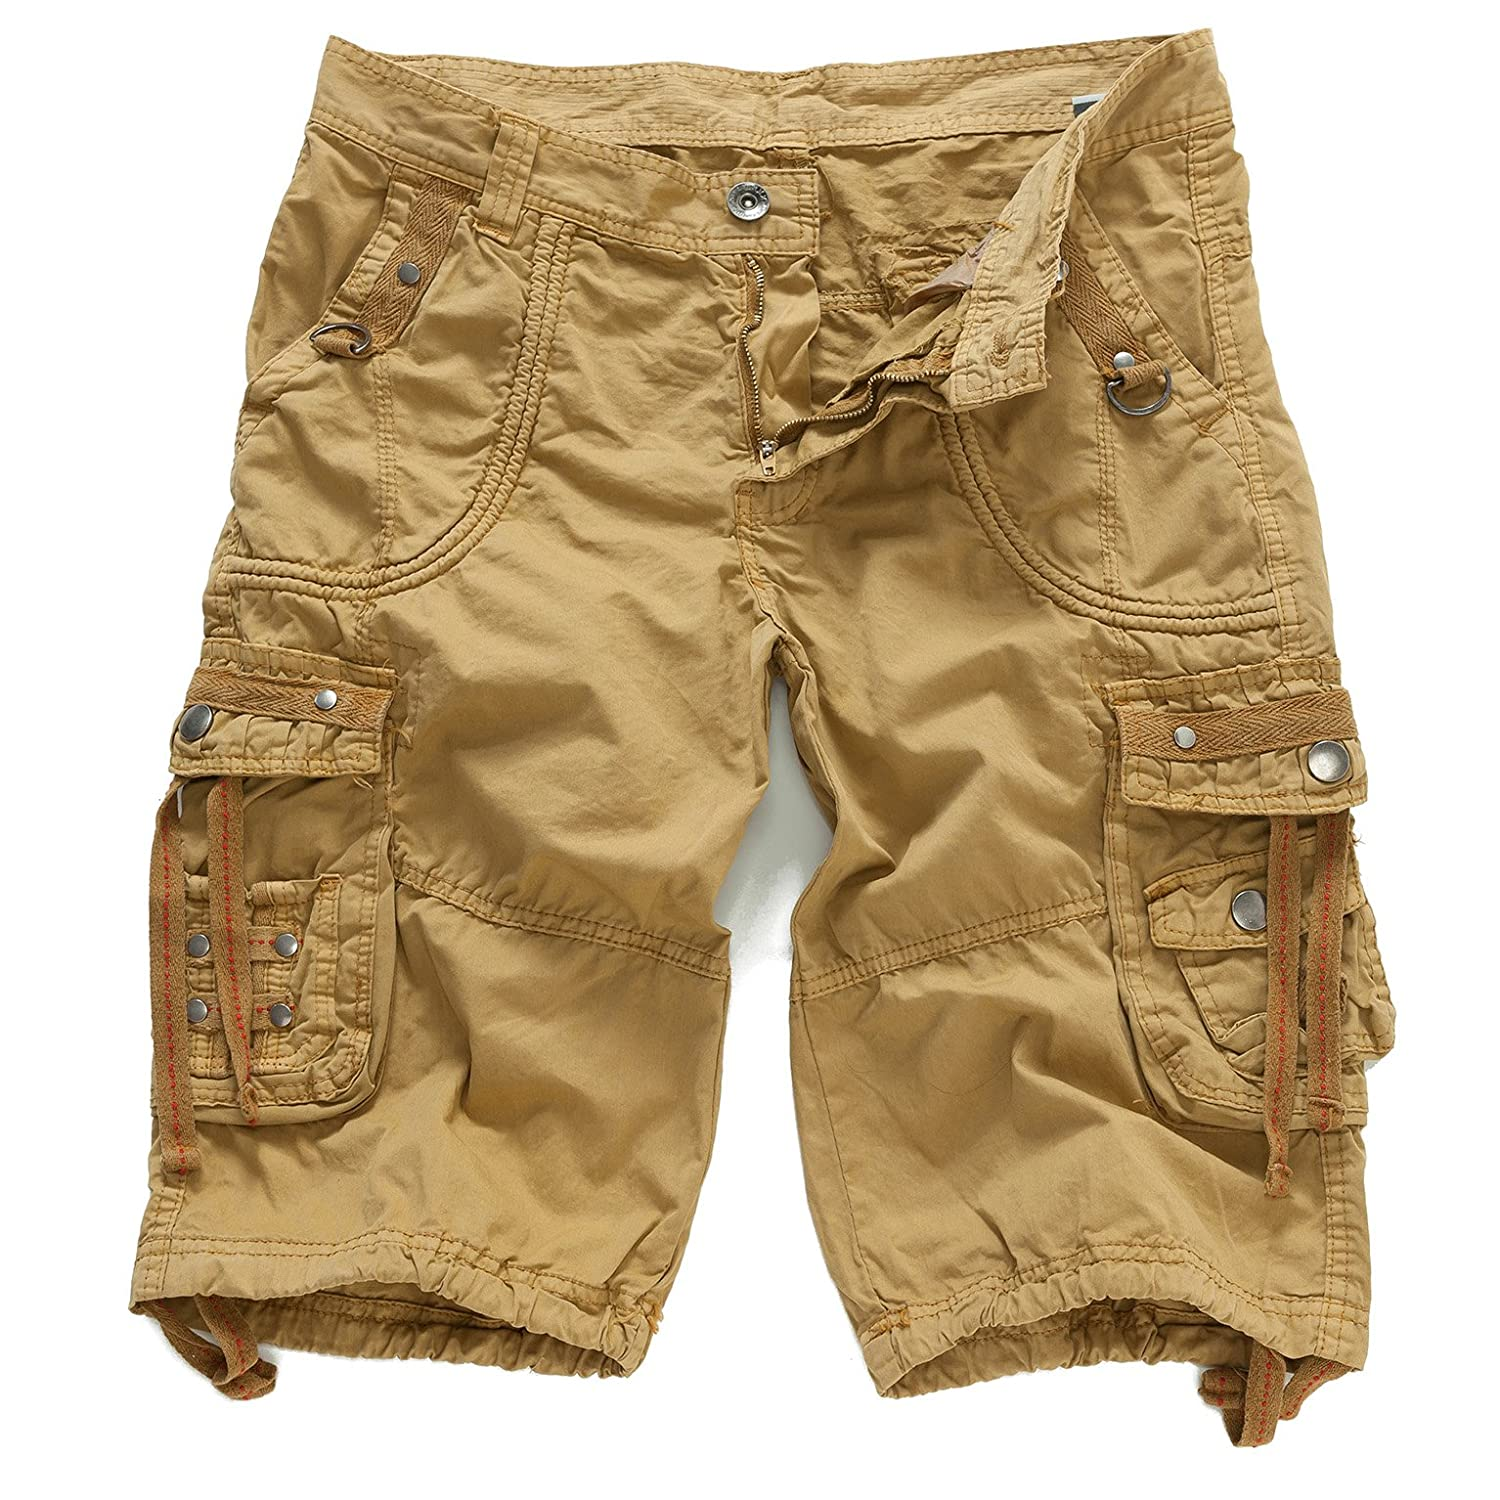 EAGLIDE Men's Cargo Shorts, Mens Loose Fit Athletic Cotton Casual Shorts